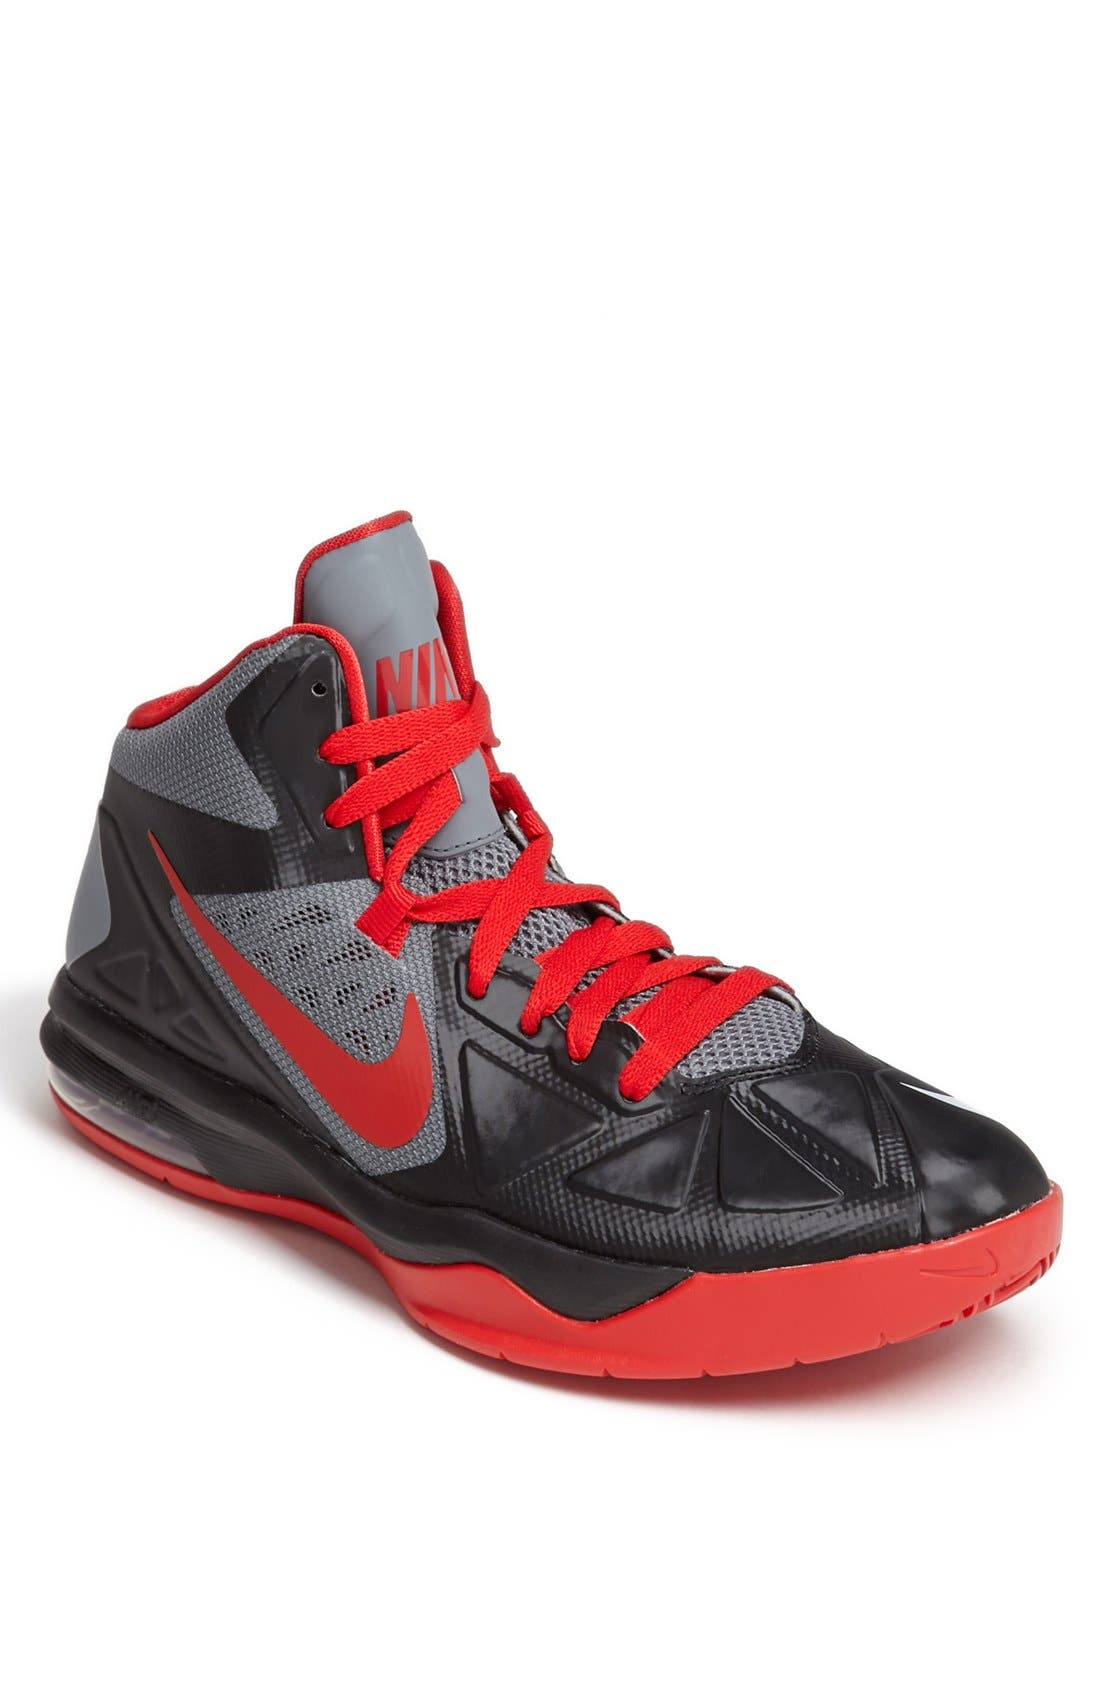 Main Image - Nike 'Air Max Body U' Basketball Shoe (Men)